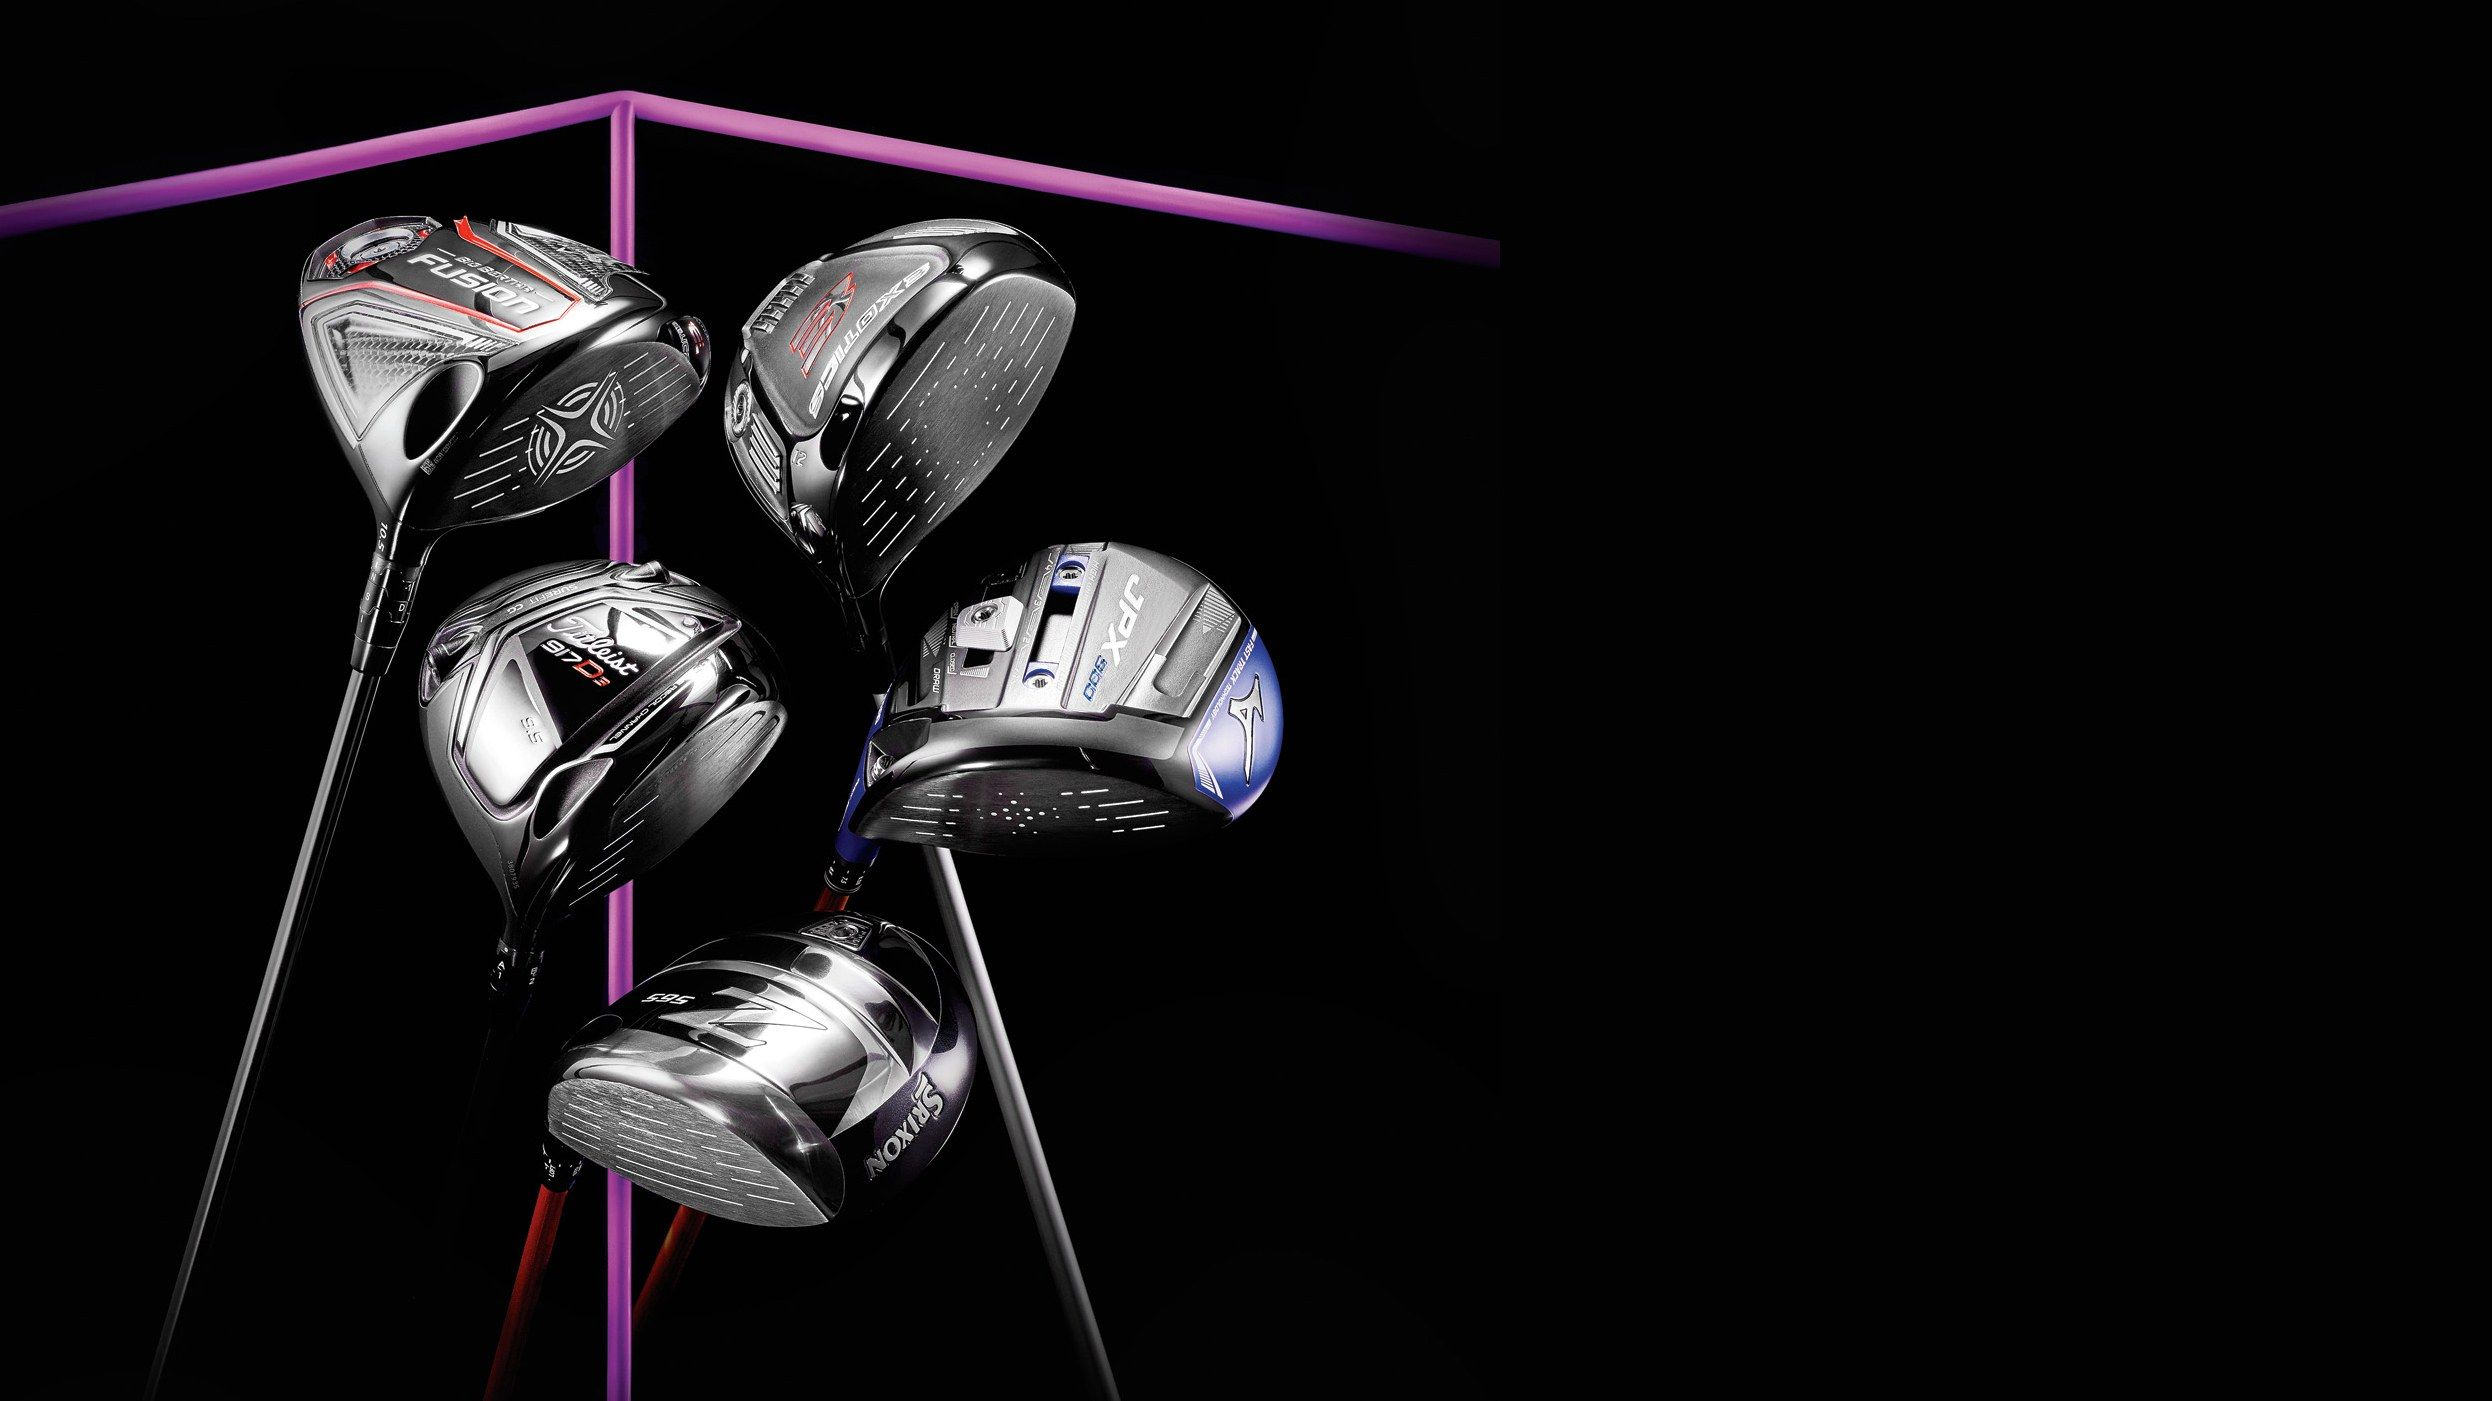 13 new clubs for any type of player httpwwwgolfdigest